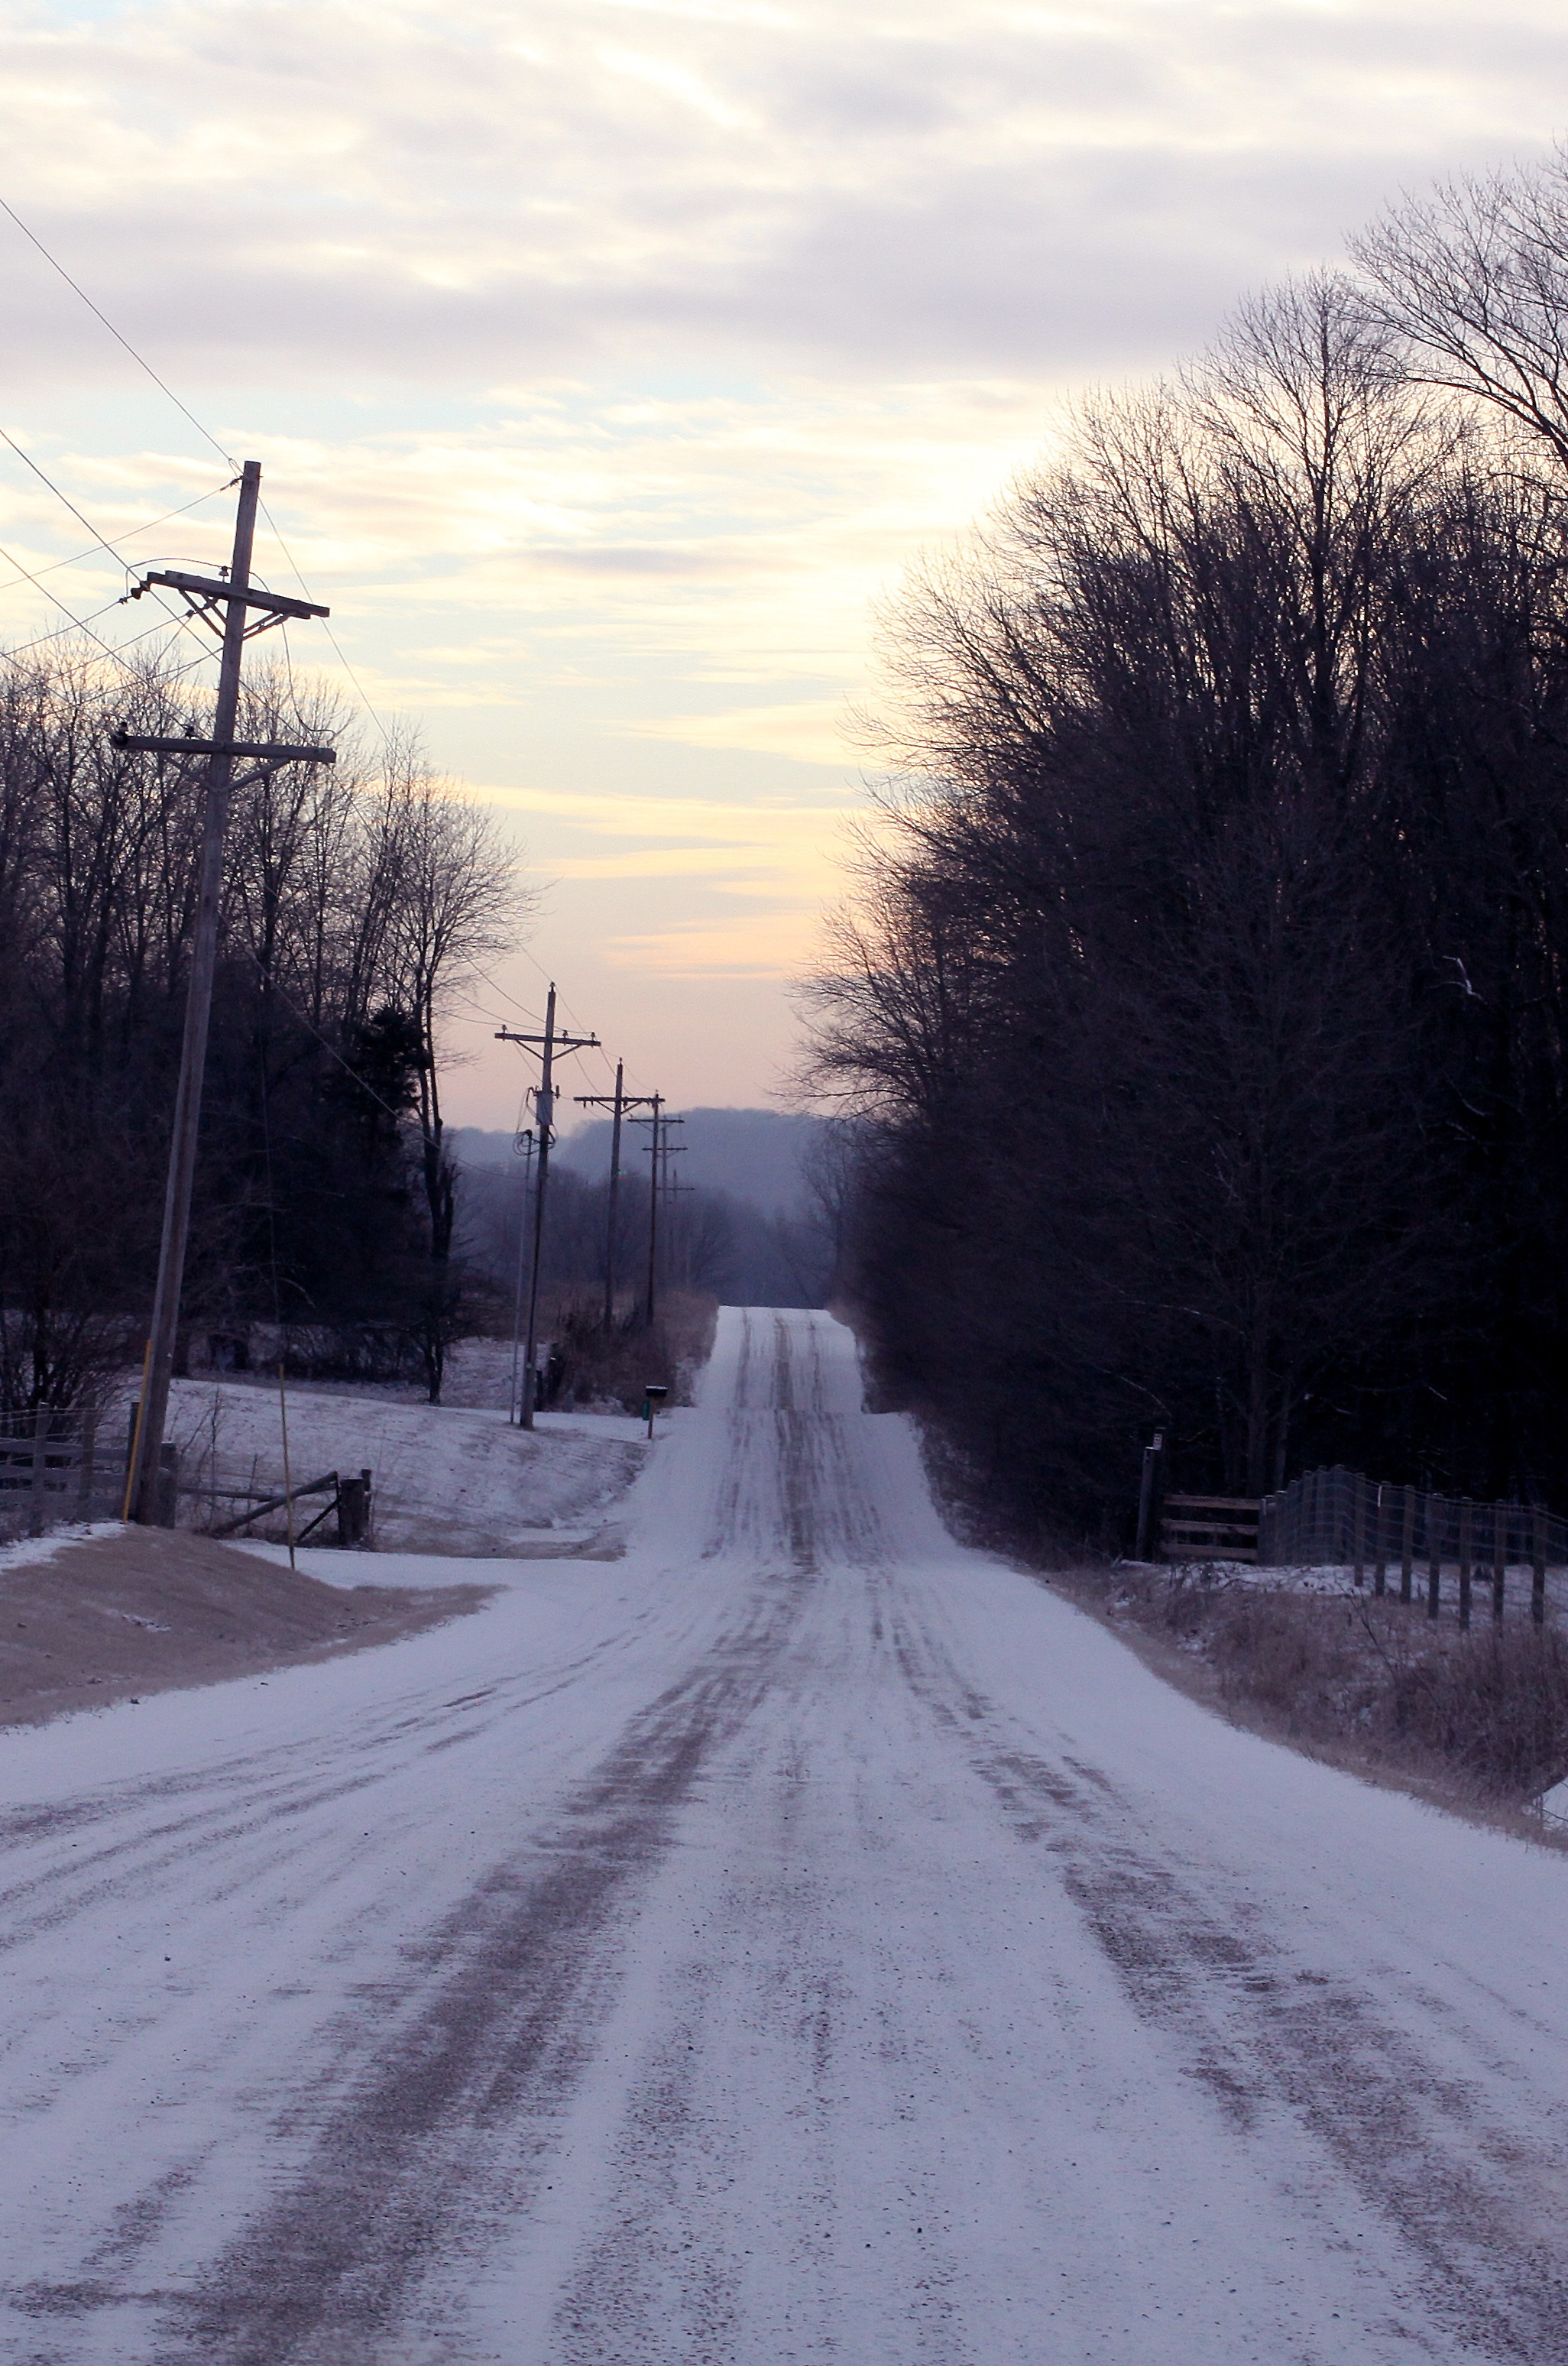 County roads, such as CR 550 S in Henry County, often prove the most treacherous in Hoosier winters.